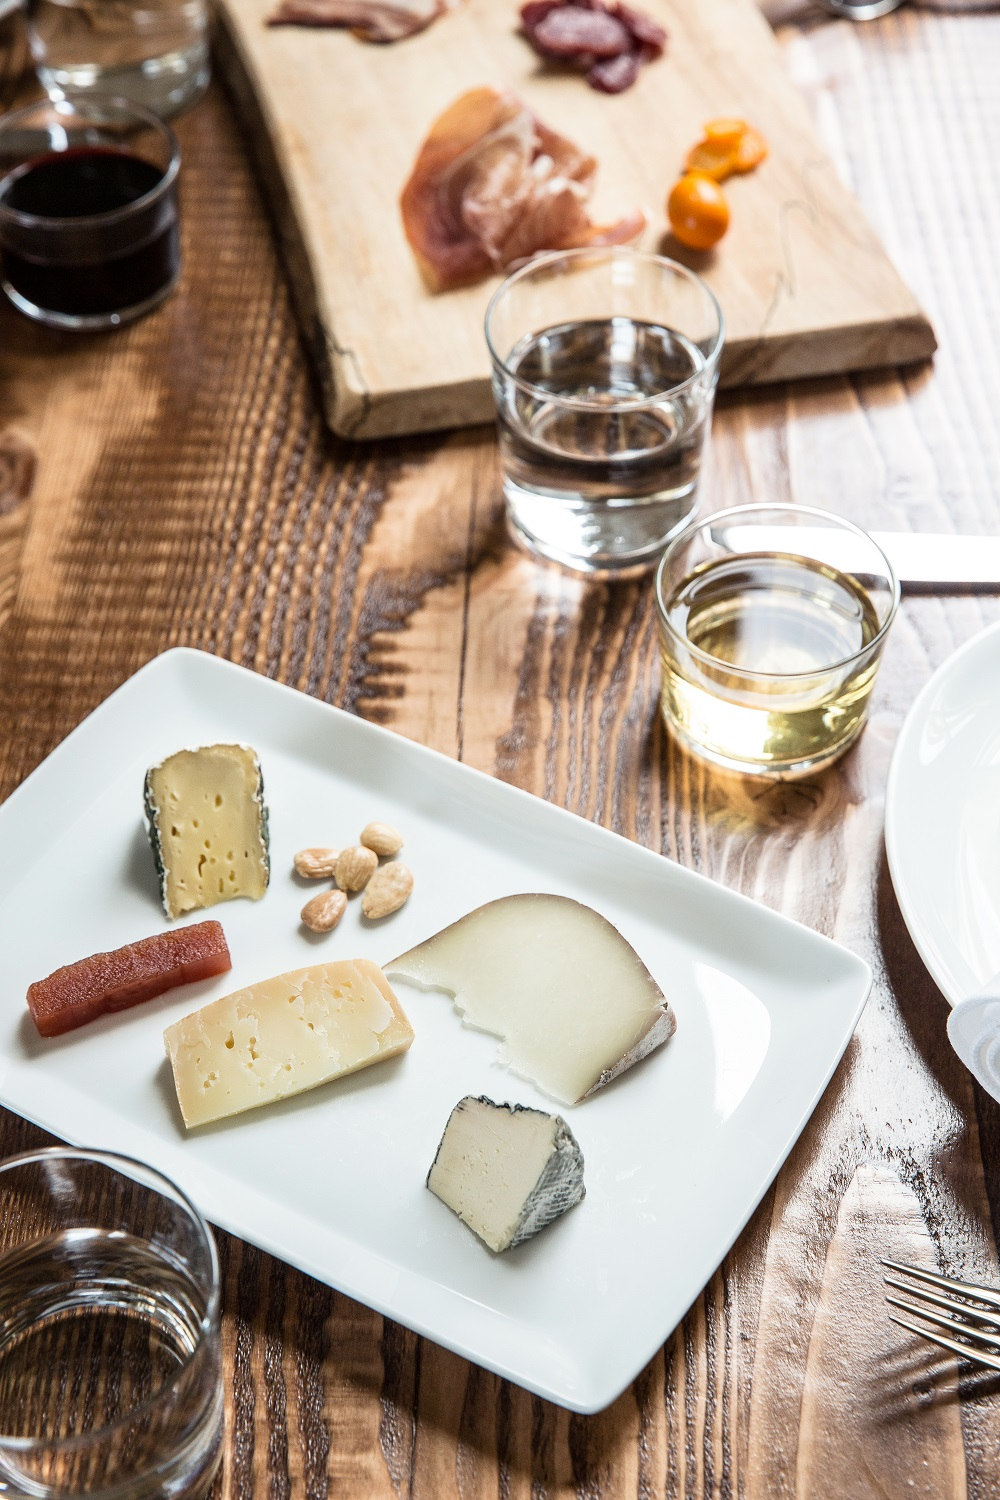 Cheese with quince paste and Marcona almonds at The Commissary. Photo: Aubrie Pick